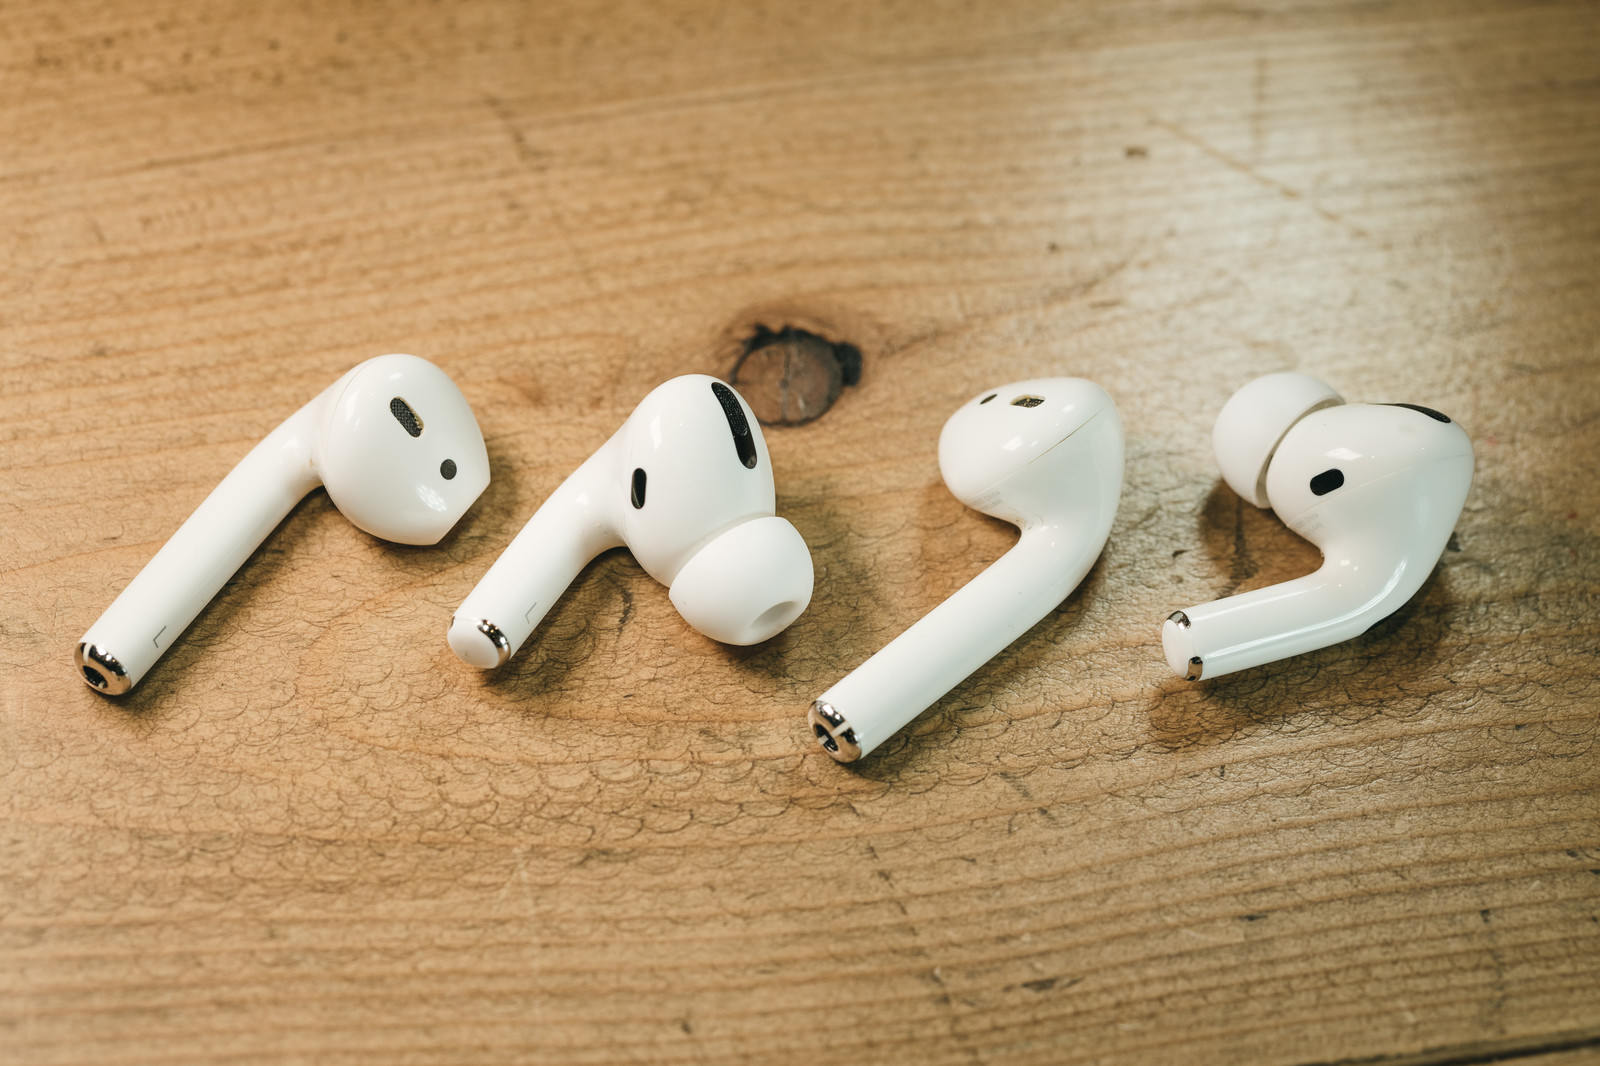 Airpods458A2981 TP V